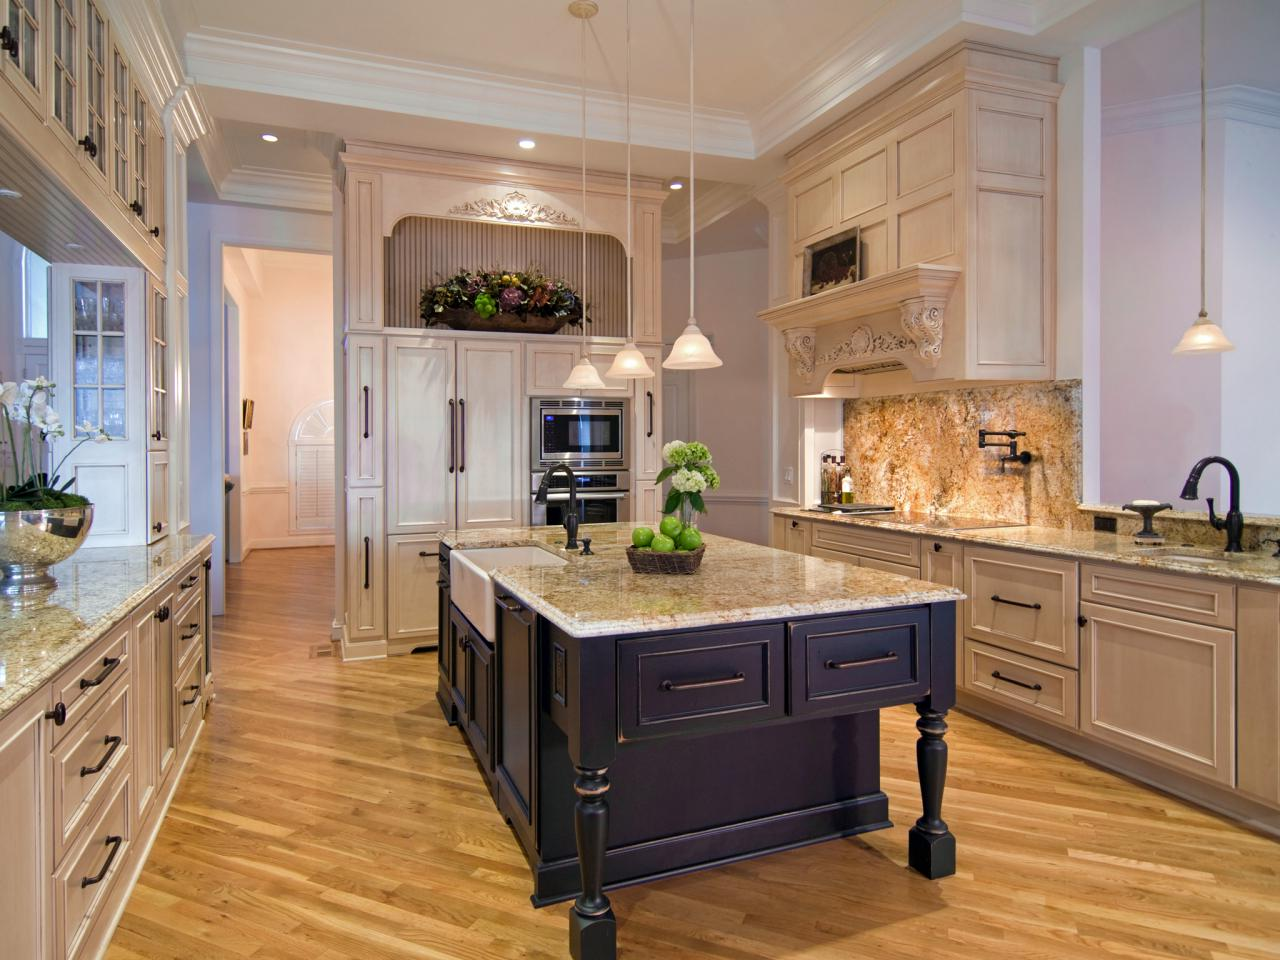 Older Home Kitchen Remodeling Ideas with Shaker Cabinets